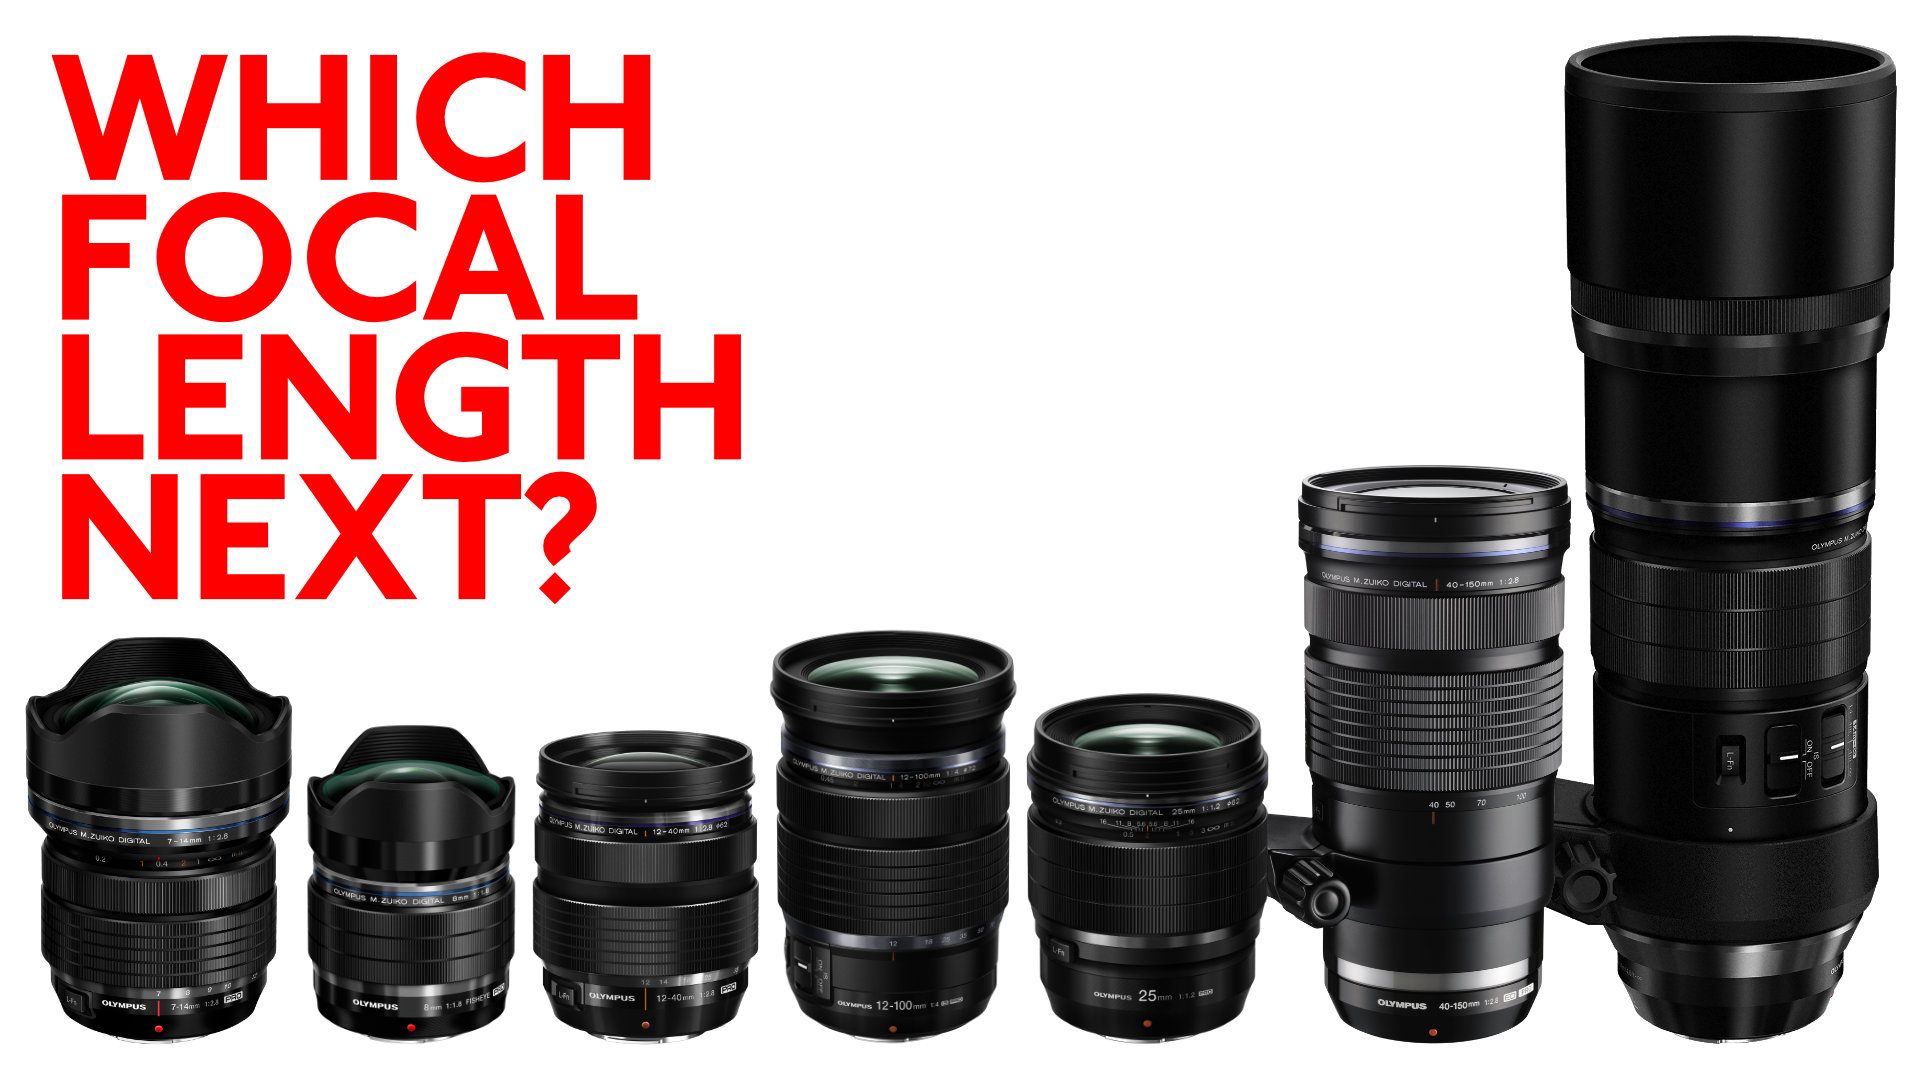 Which Prime Lenses Should Olympus Make Next for Its M Zuiko Pro